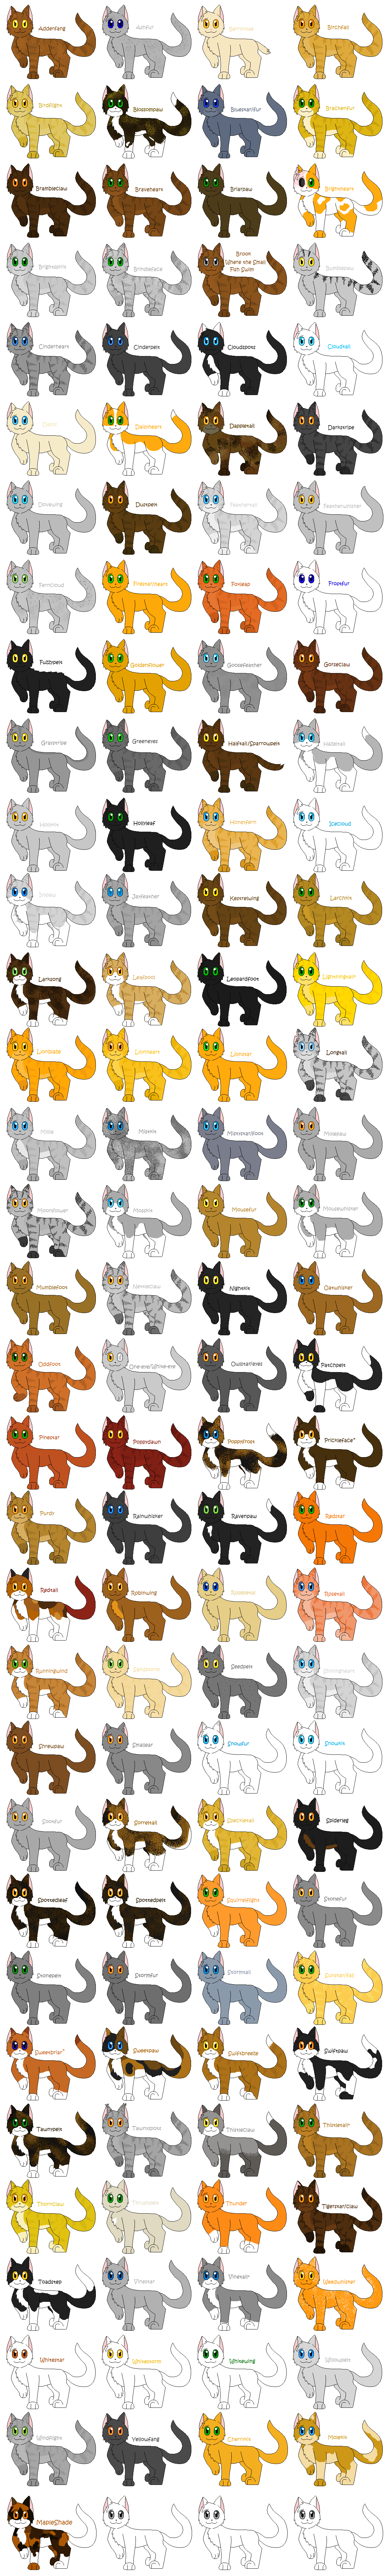 Every Known Thunderclan cat by cinderspark on DeviantArt